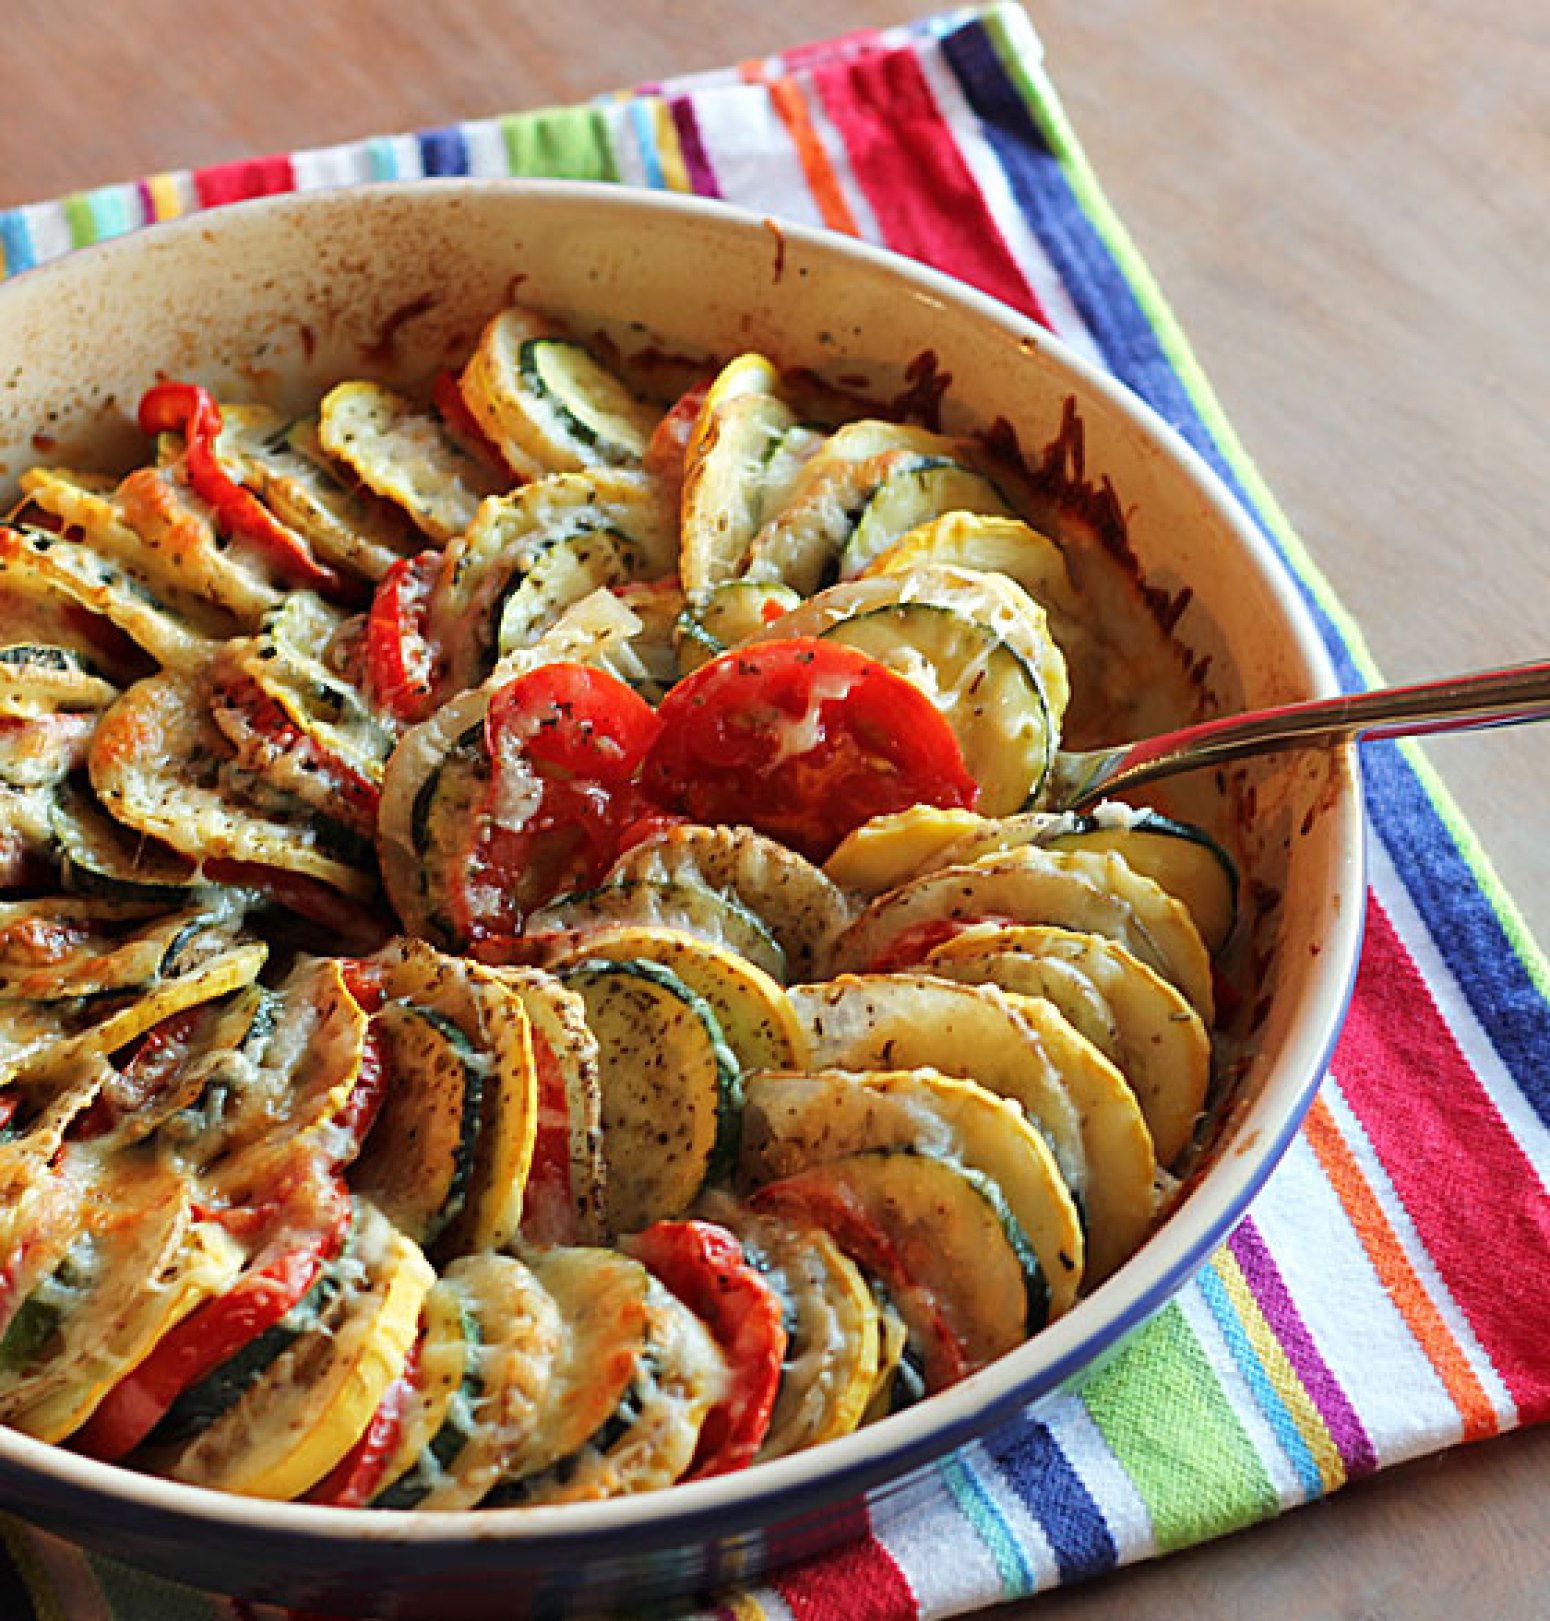 Vegetable Tian Recipe 6 | Just A Pinch Recipes